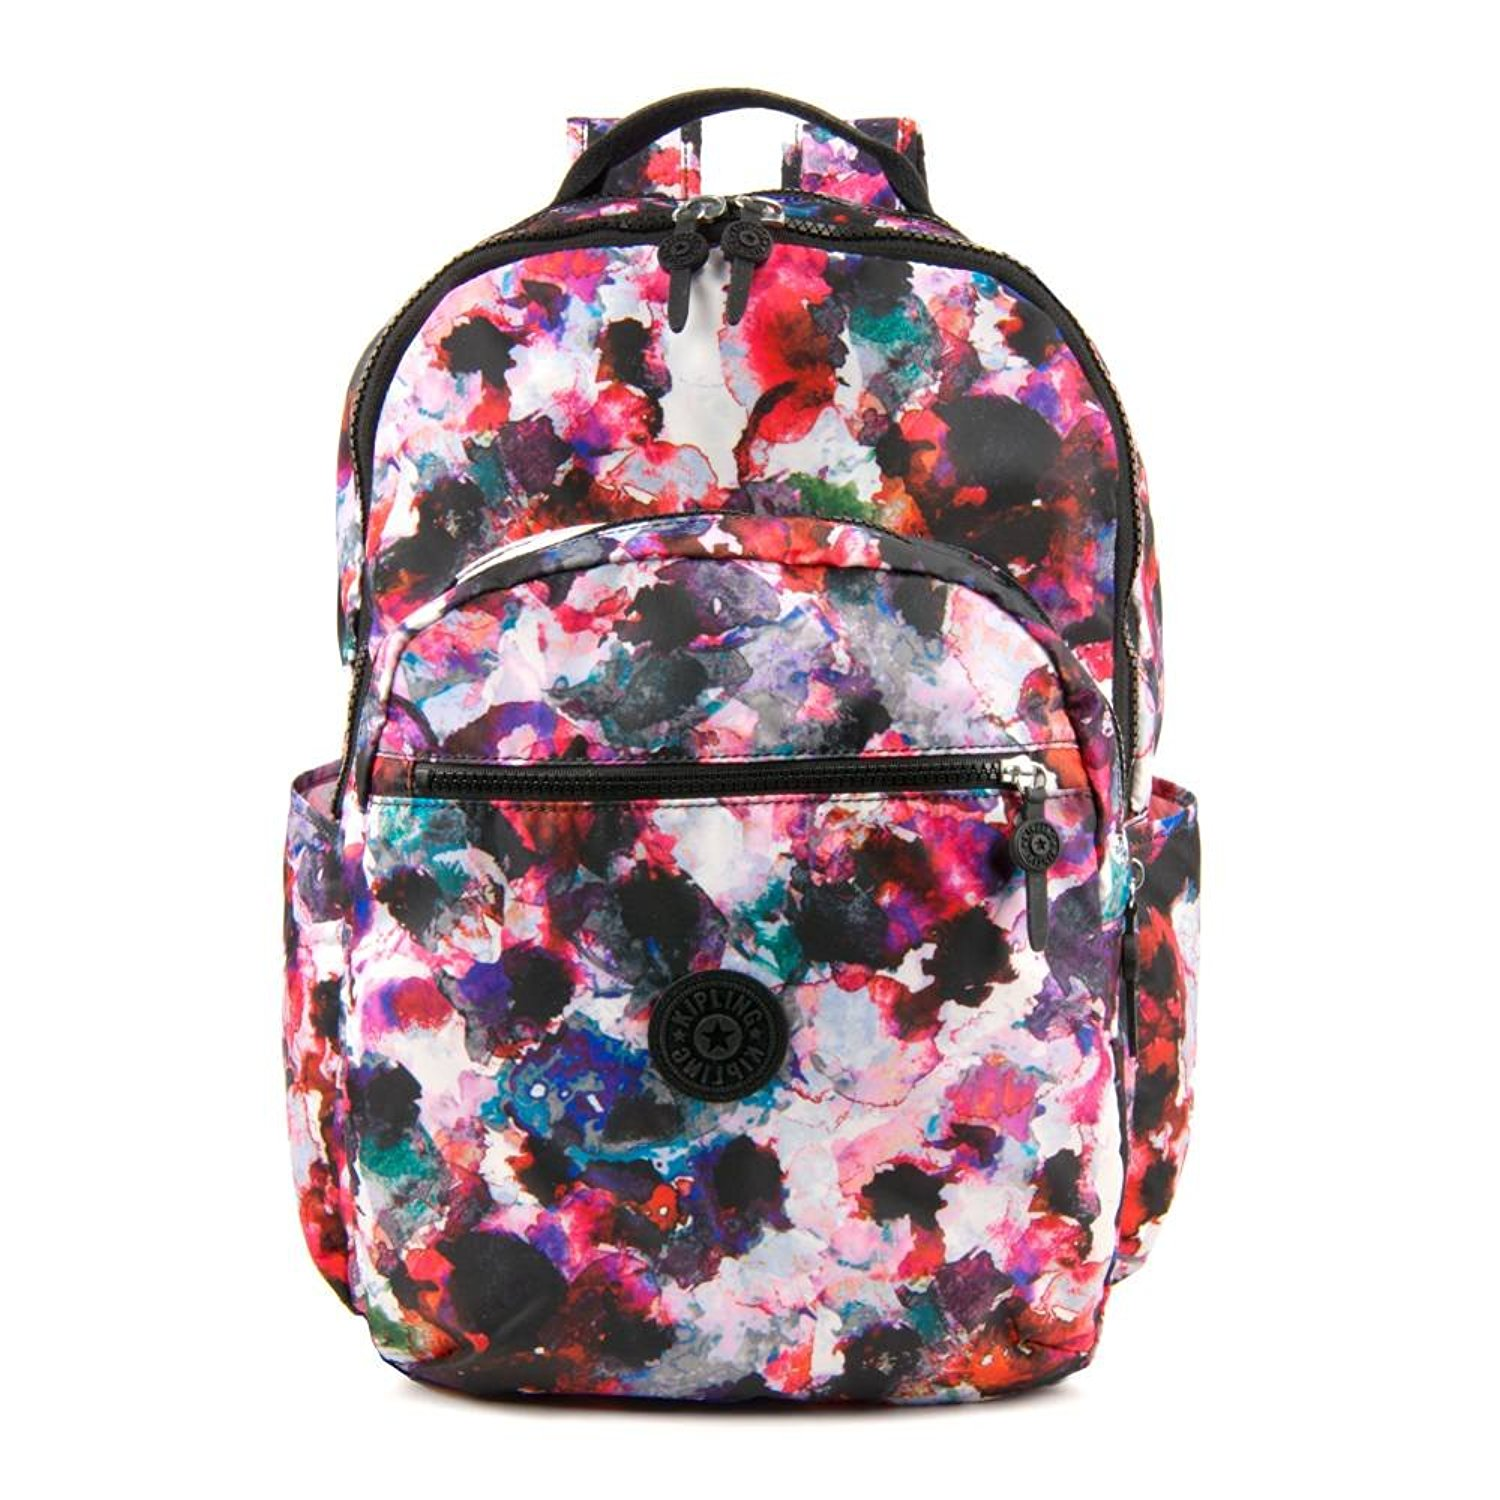 fe4ad31684 Get Quotations · Kipling Seoul Wildflower School Travel Backpack w/ Laptop  Sleeve, Side Pockets